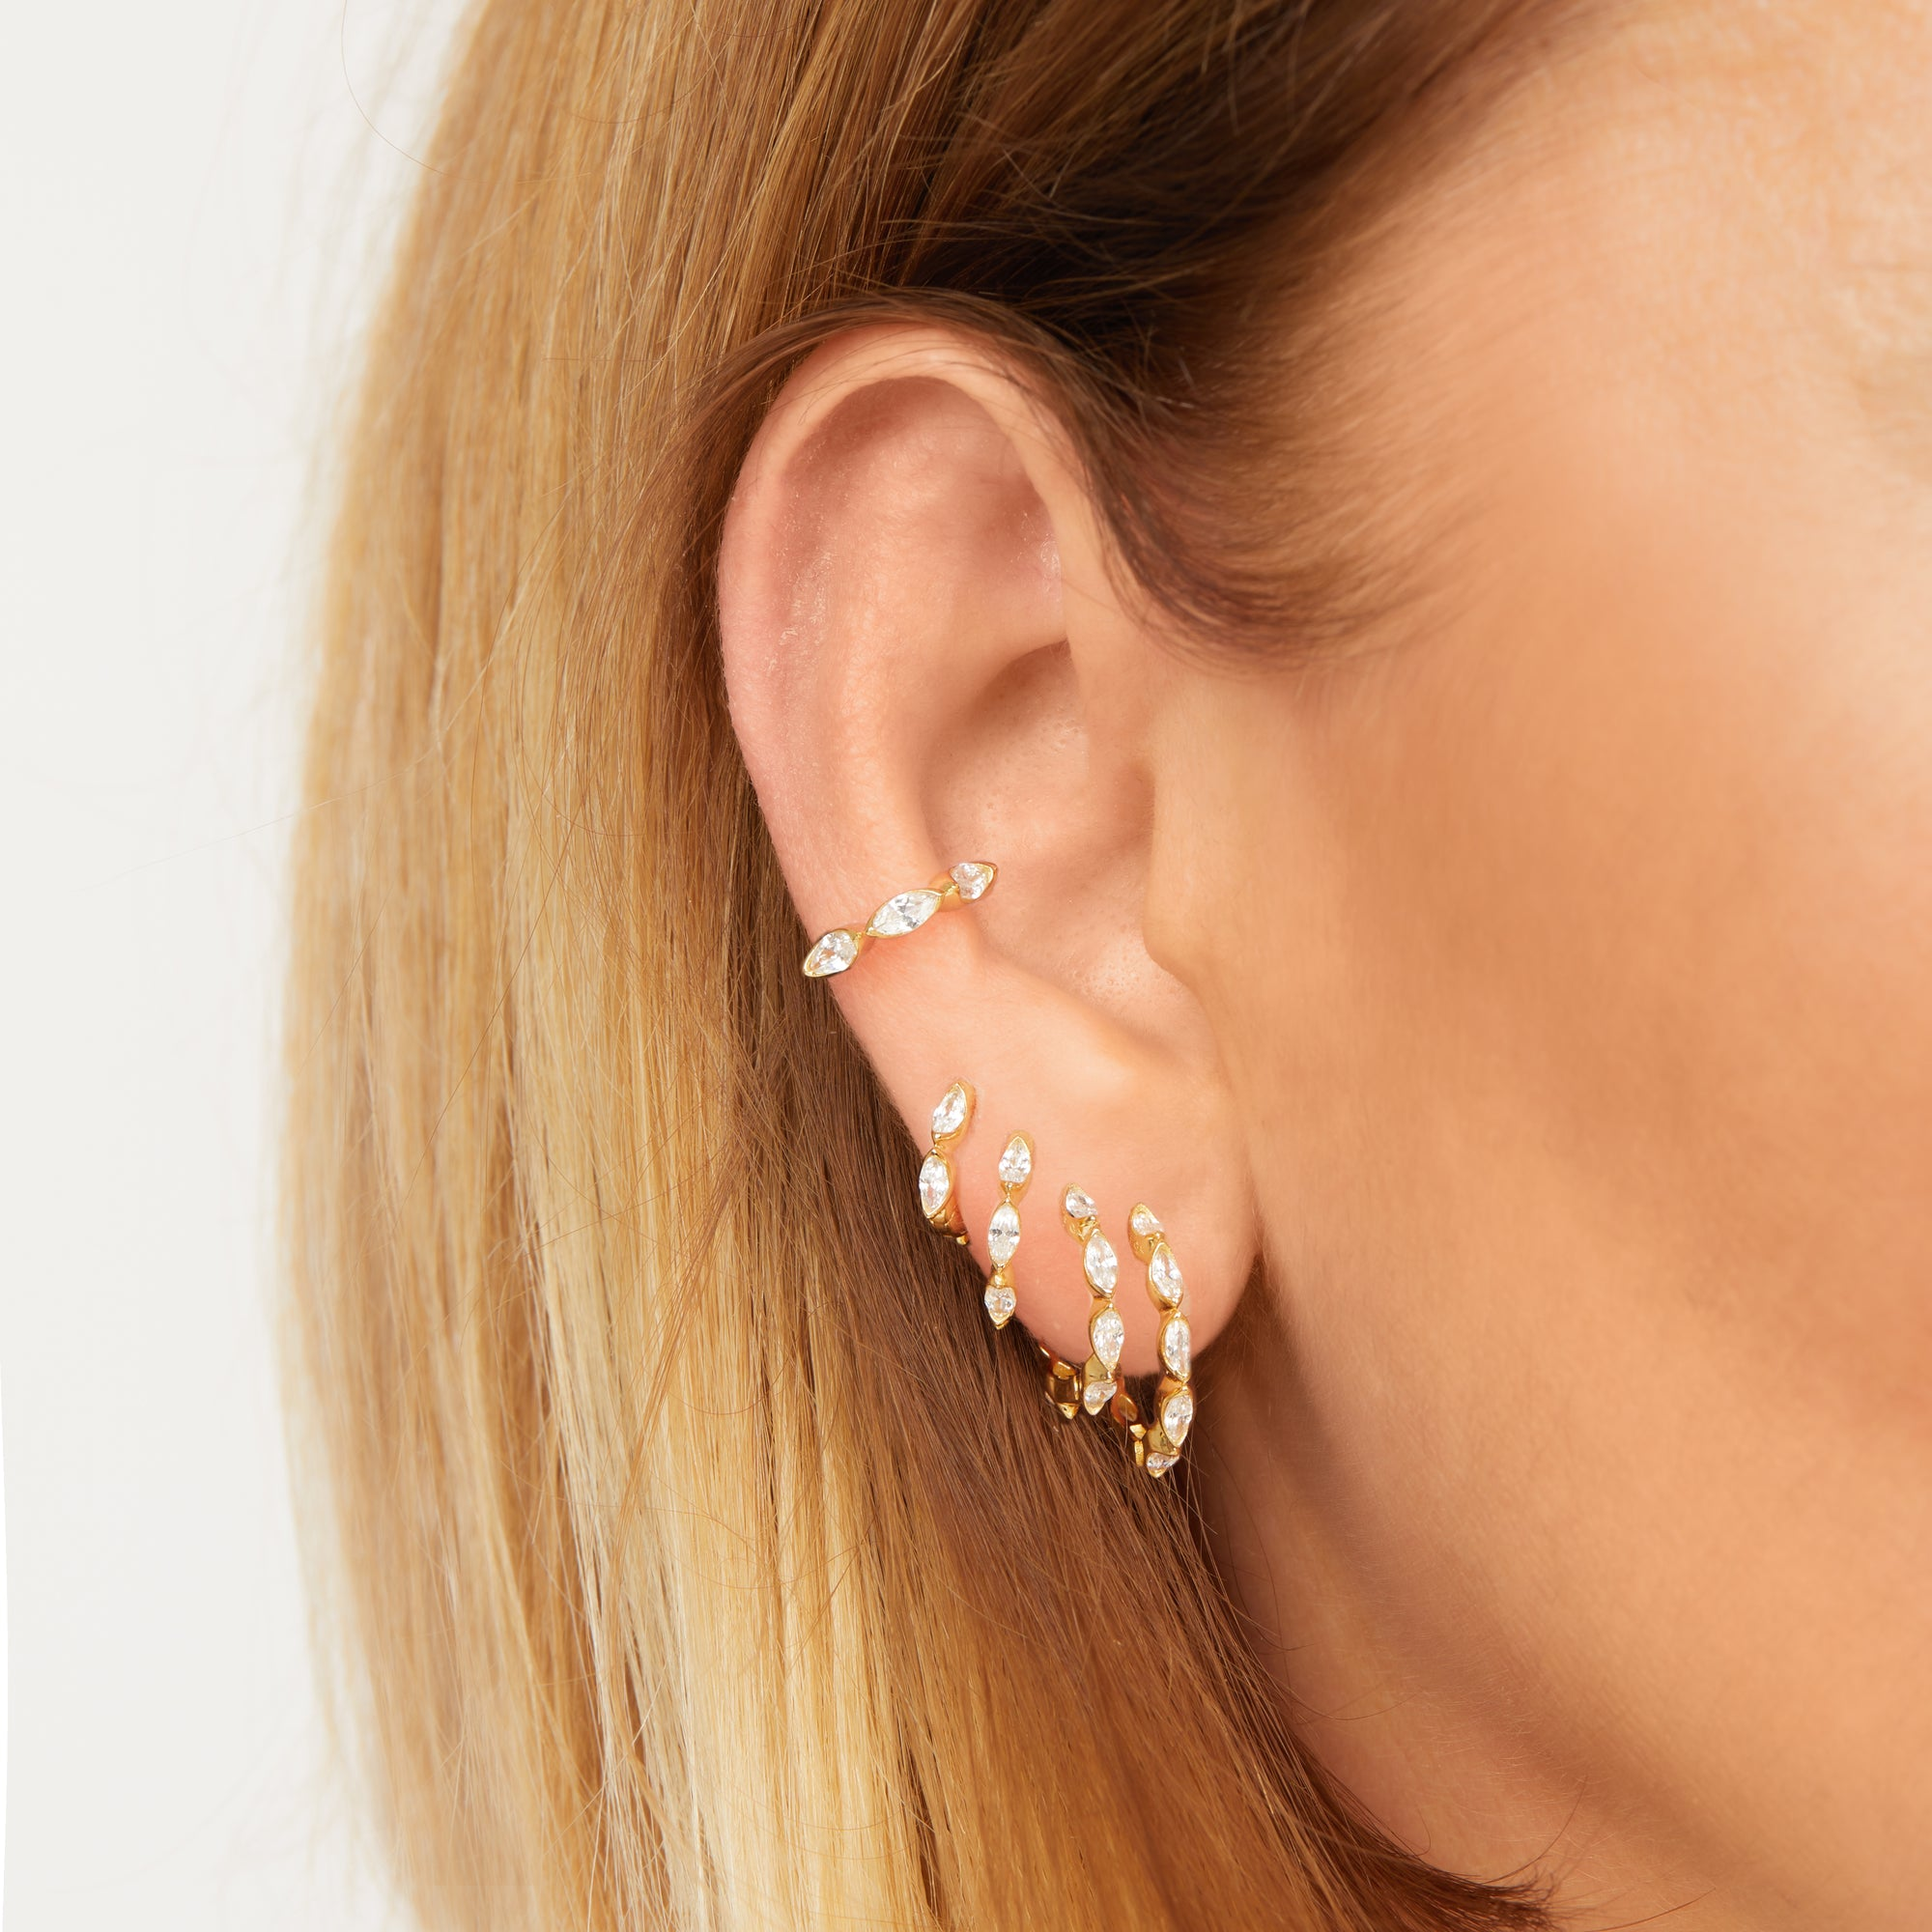 Graduated Hoop Earrings: Decoding the New Drop